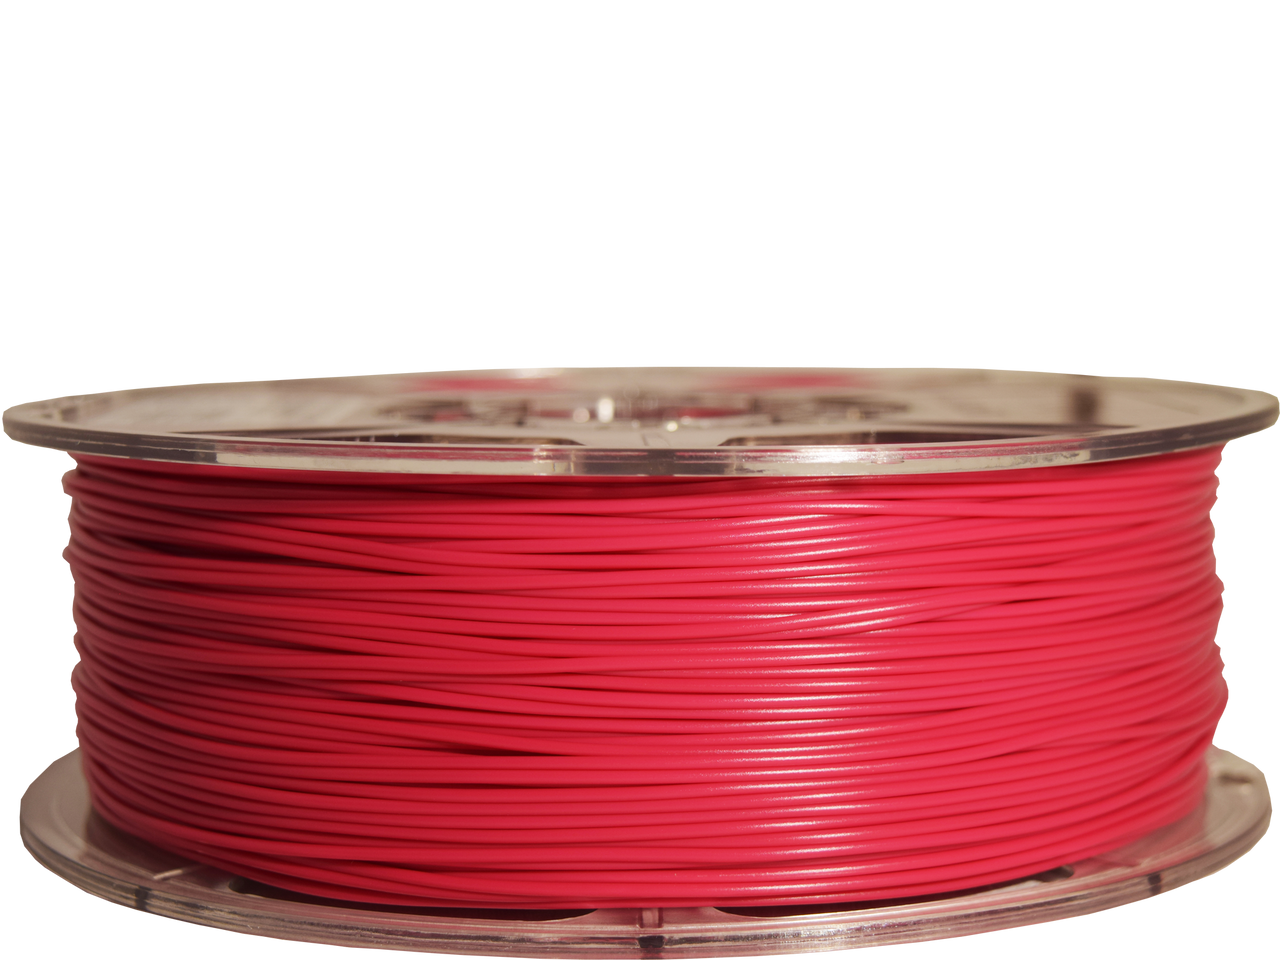 RePLAy 3D Virgin PLA+  Pink